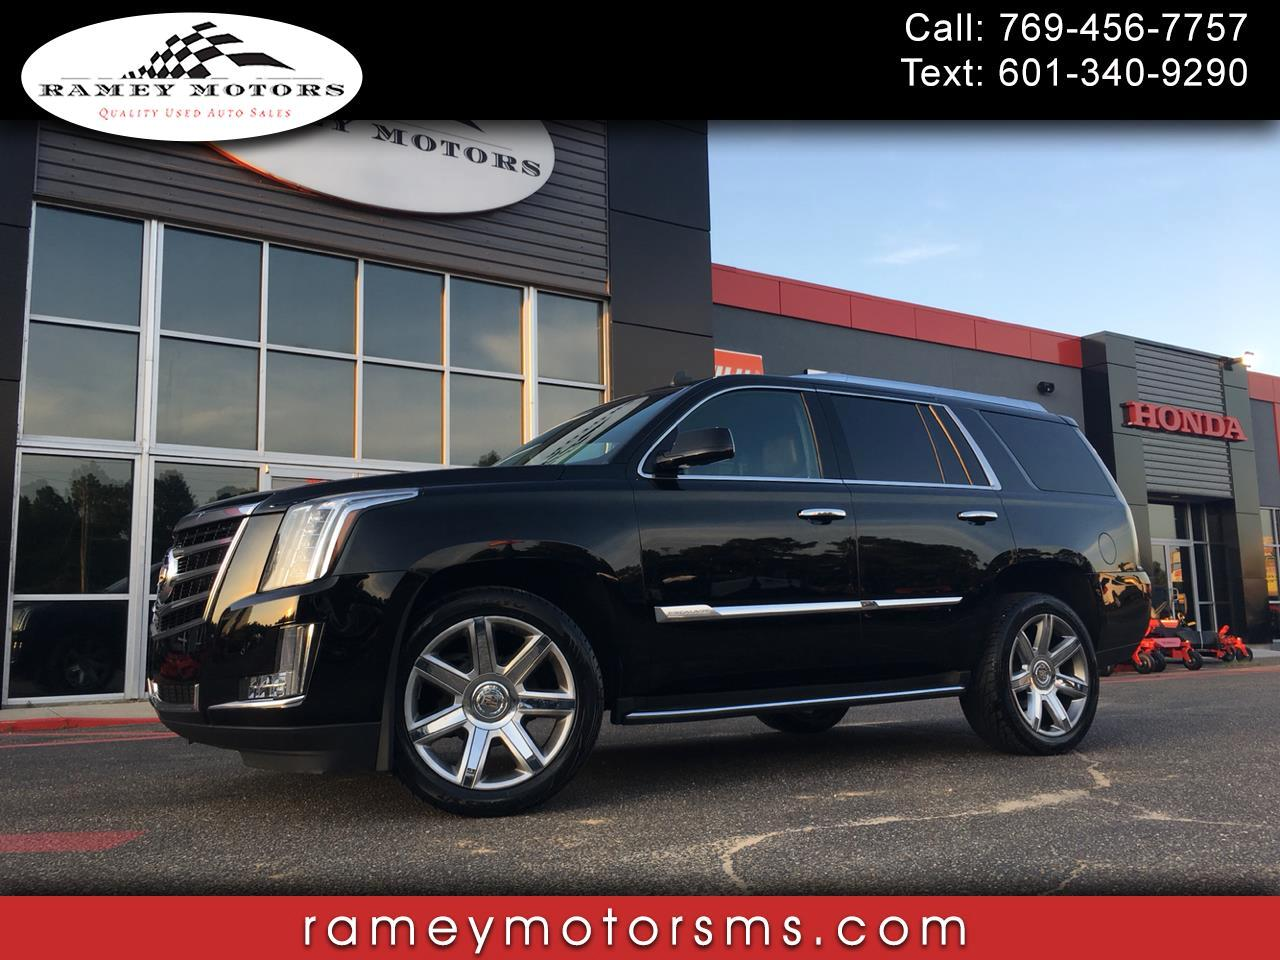 2015 Cadillac Escalade 4WD LUXURY EDITION